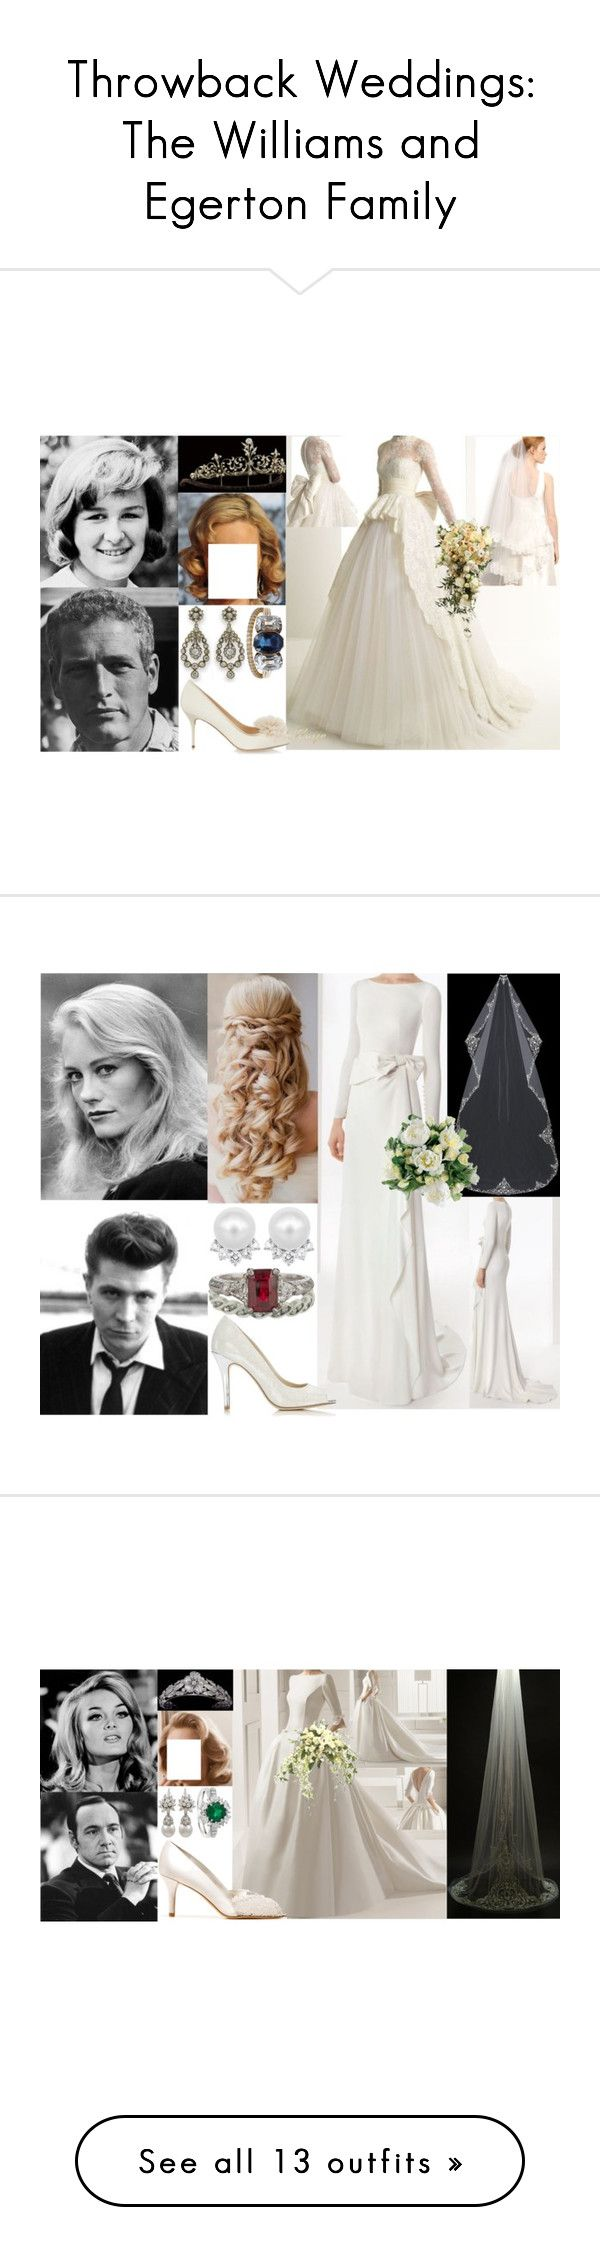 """""""Throwback Weddings: The Williams and Egerton Family"""" by marywindsor ❤ liked on Polyvore featuring outerwear, coats, white coat, Zuhair Murad, TIARA, Nina, Rosa Clará, Wallis, Guide London and Blue Nile"""